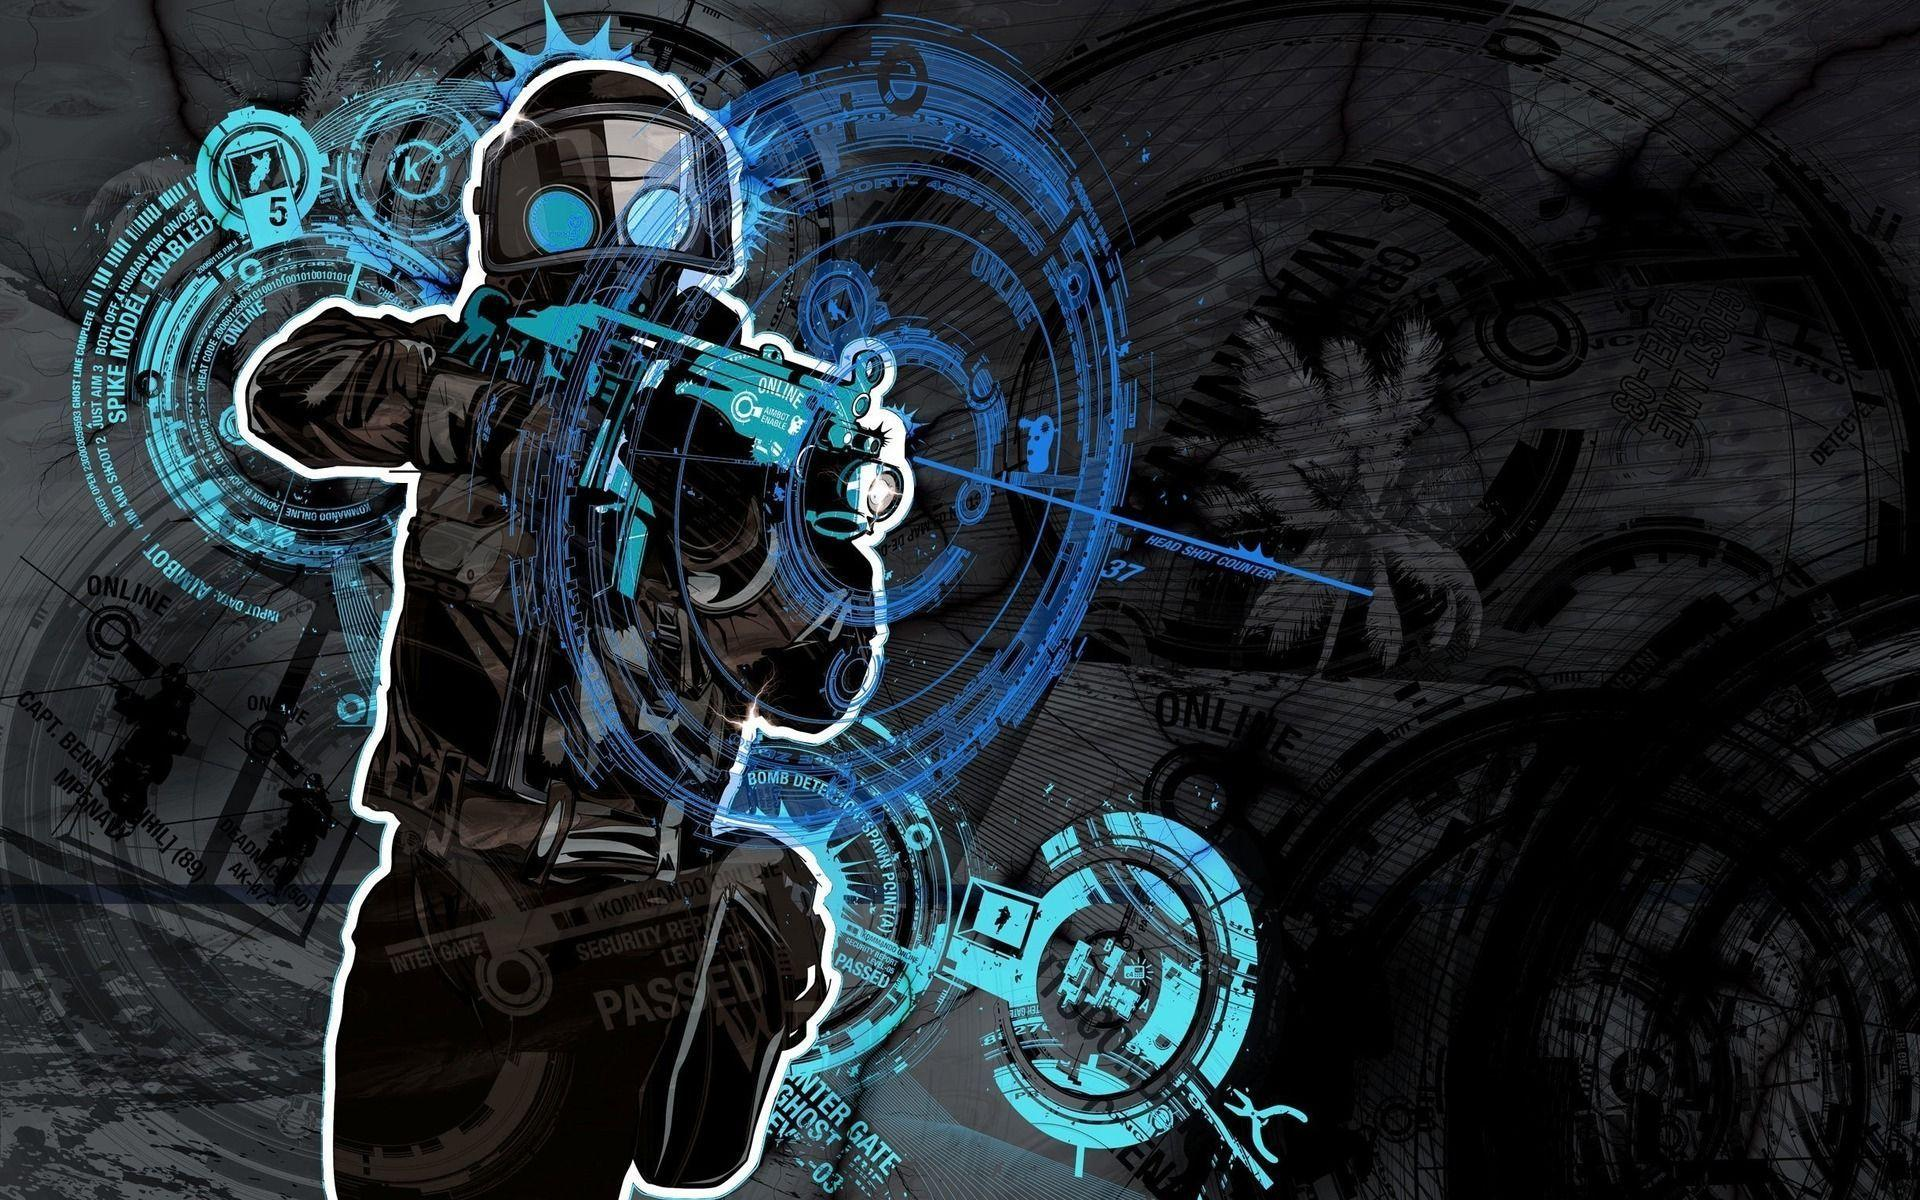 Counter Strike Global Offensive Wallpapers Group with 51 items